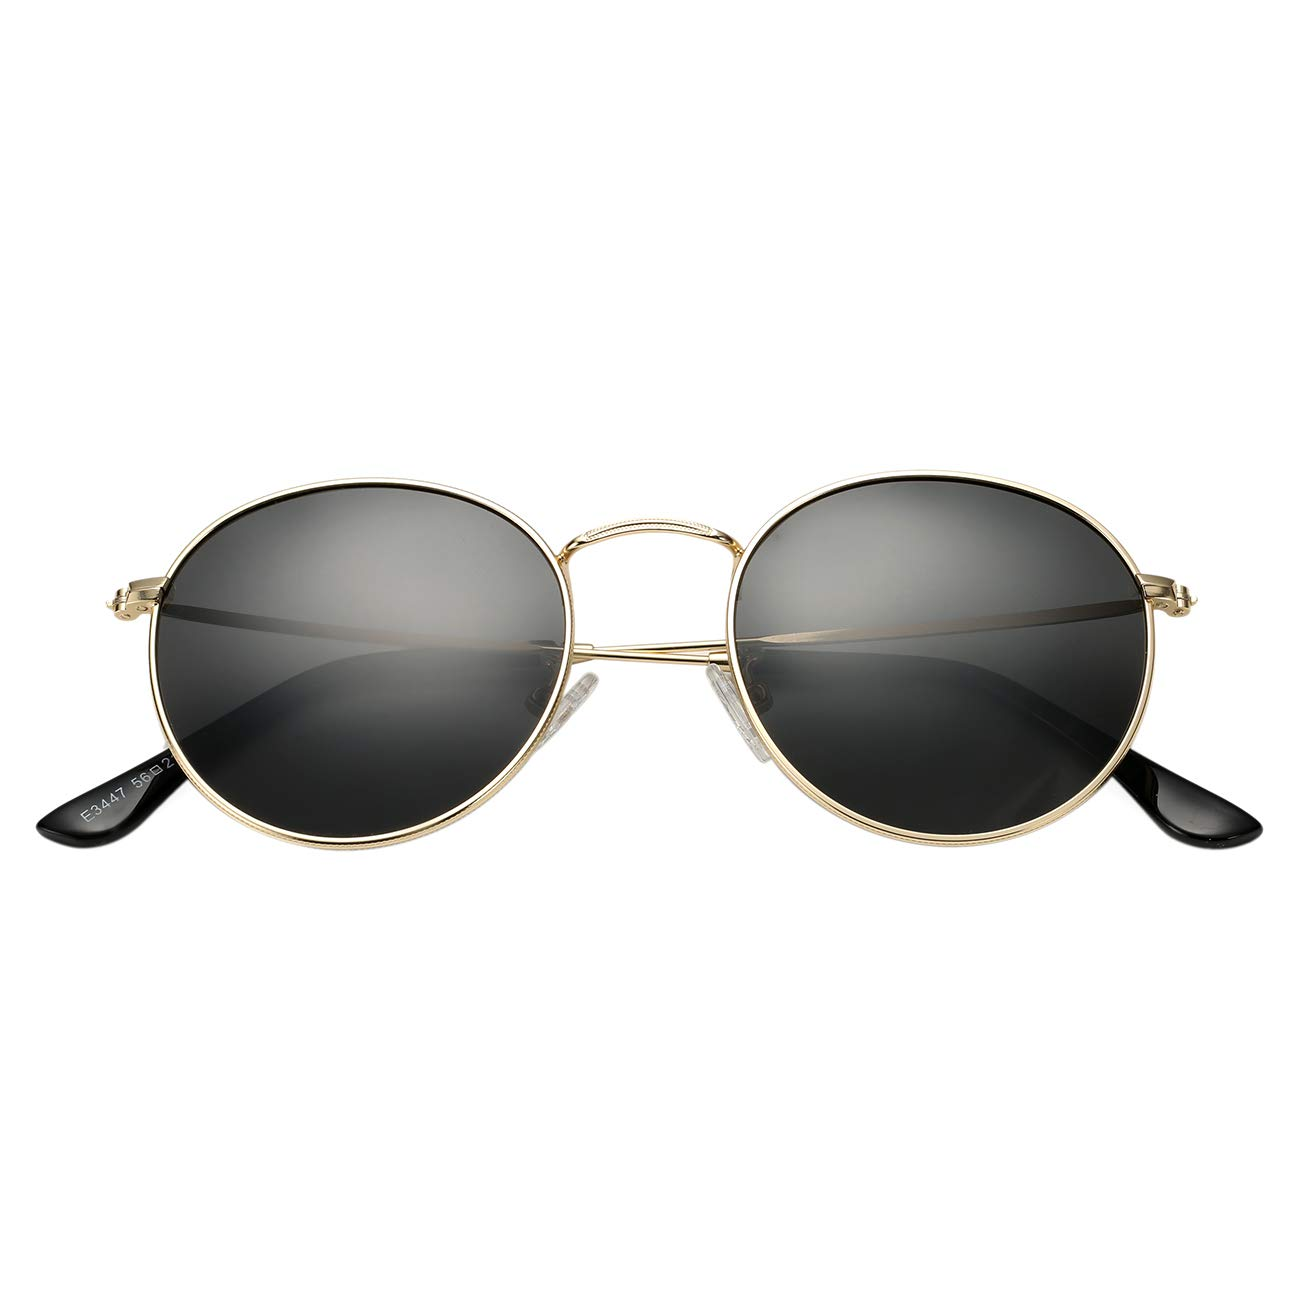 BOURYO Classic Polarized Small Round Sunglasses for, A1 Gold/Black, Size 50mm by BOURYO